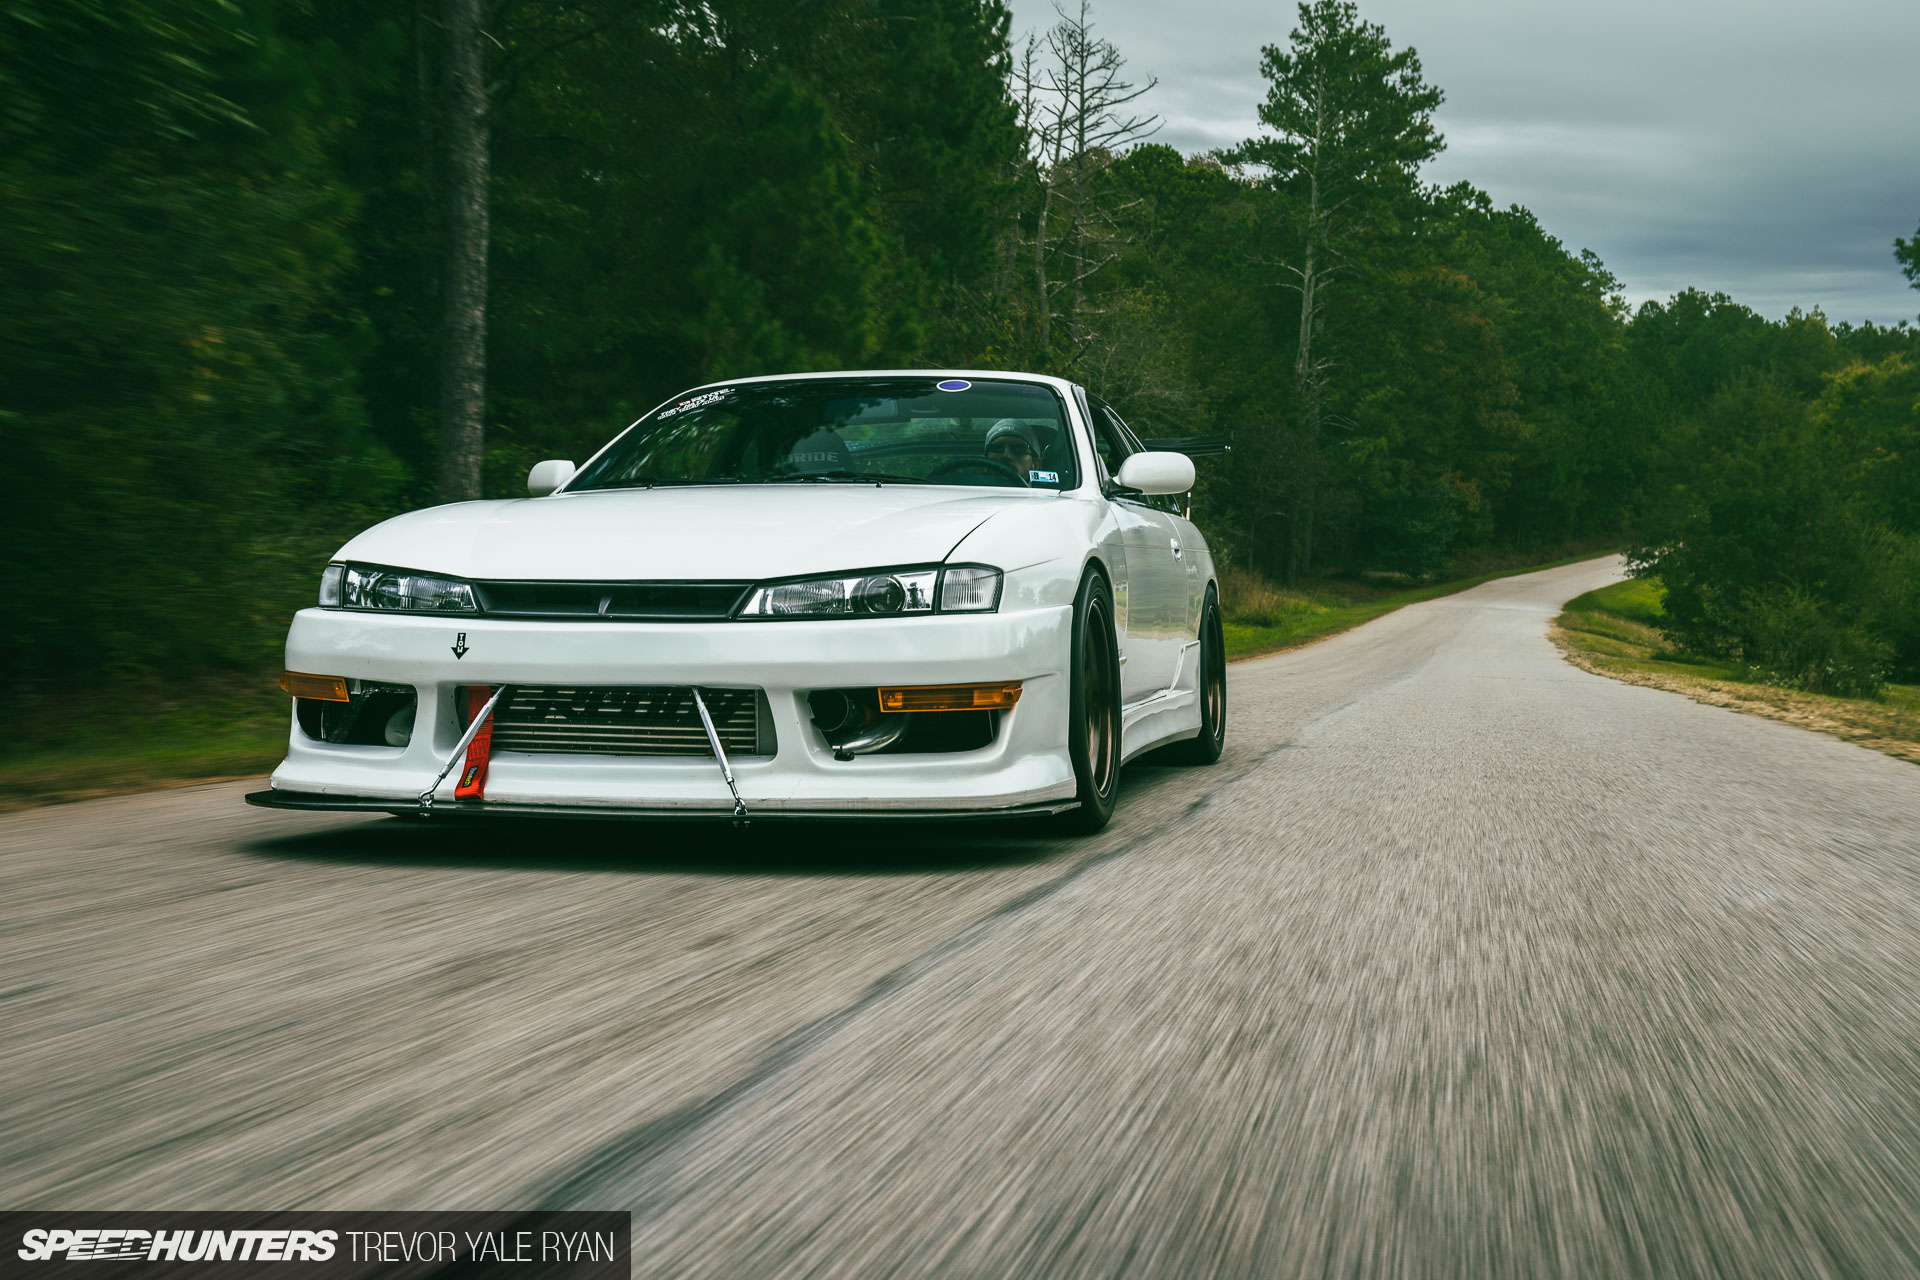 Keeping It In The Family: The 500hp240SX